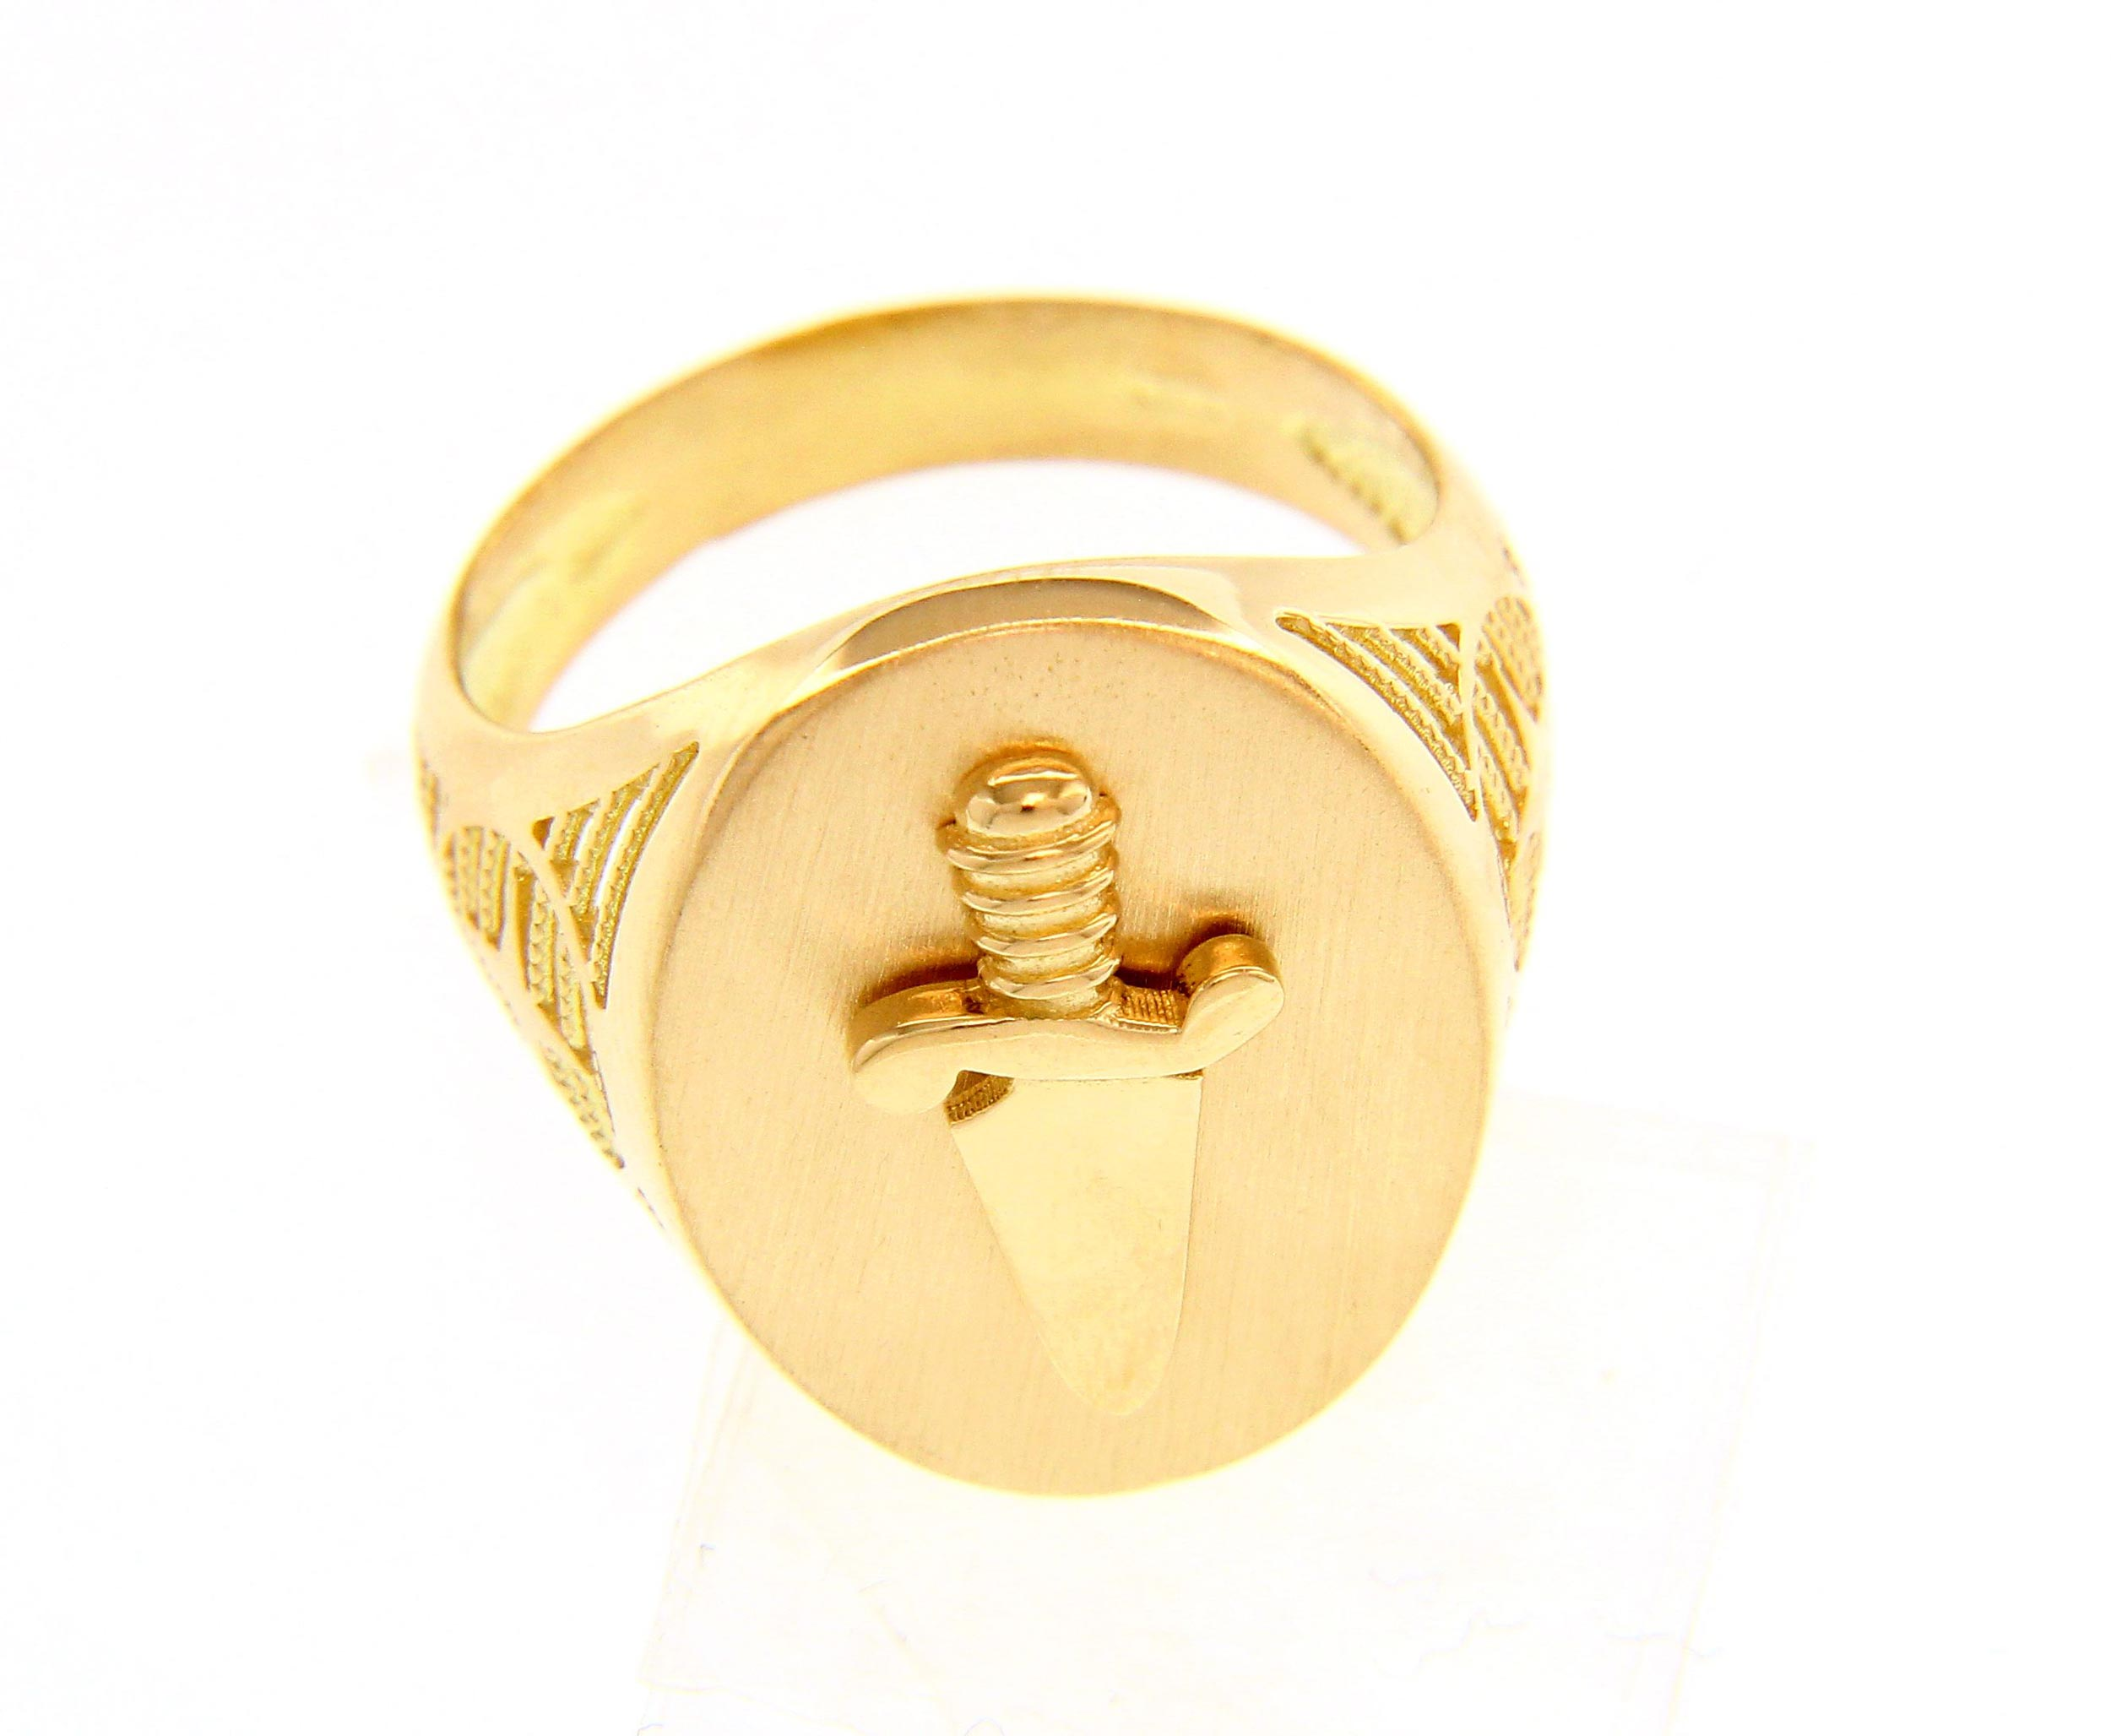 Stylish and bold 18ct Yellow gold Ring with Dagger